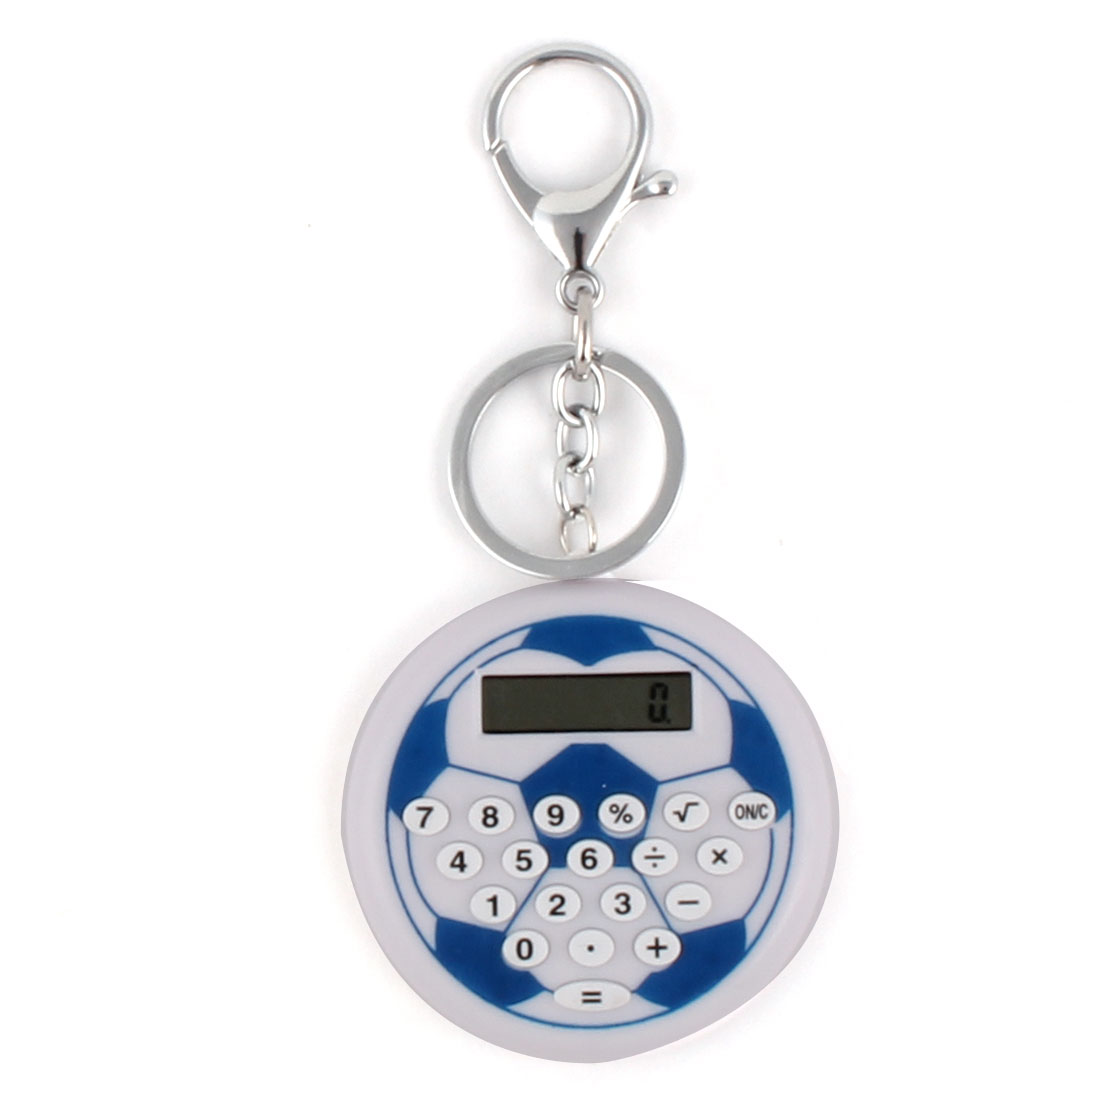 Unique Bargains LCD Display Football Pattern 8 Digit Pocket Portable Key Chain Ring Calculator